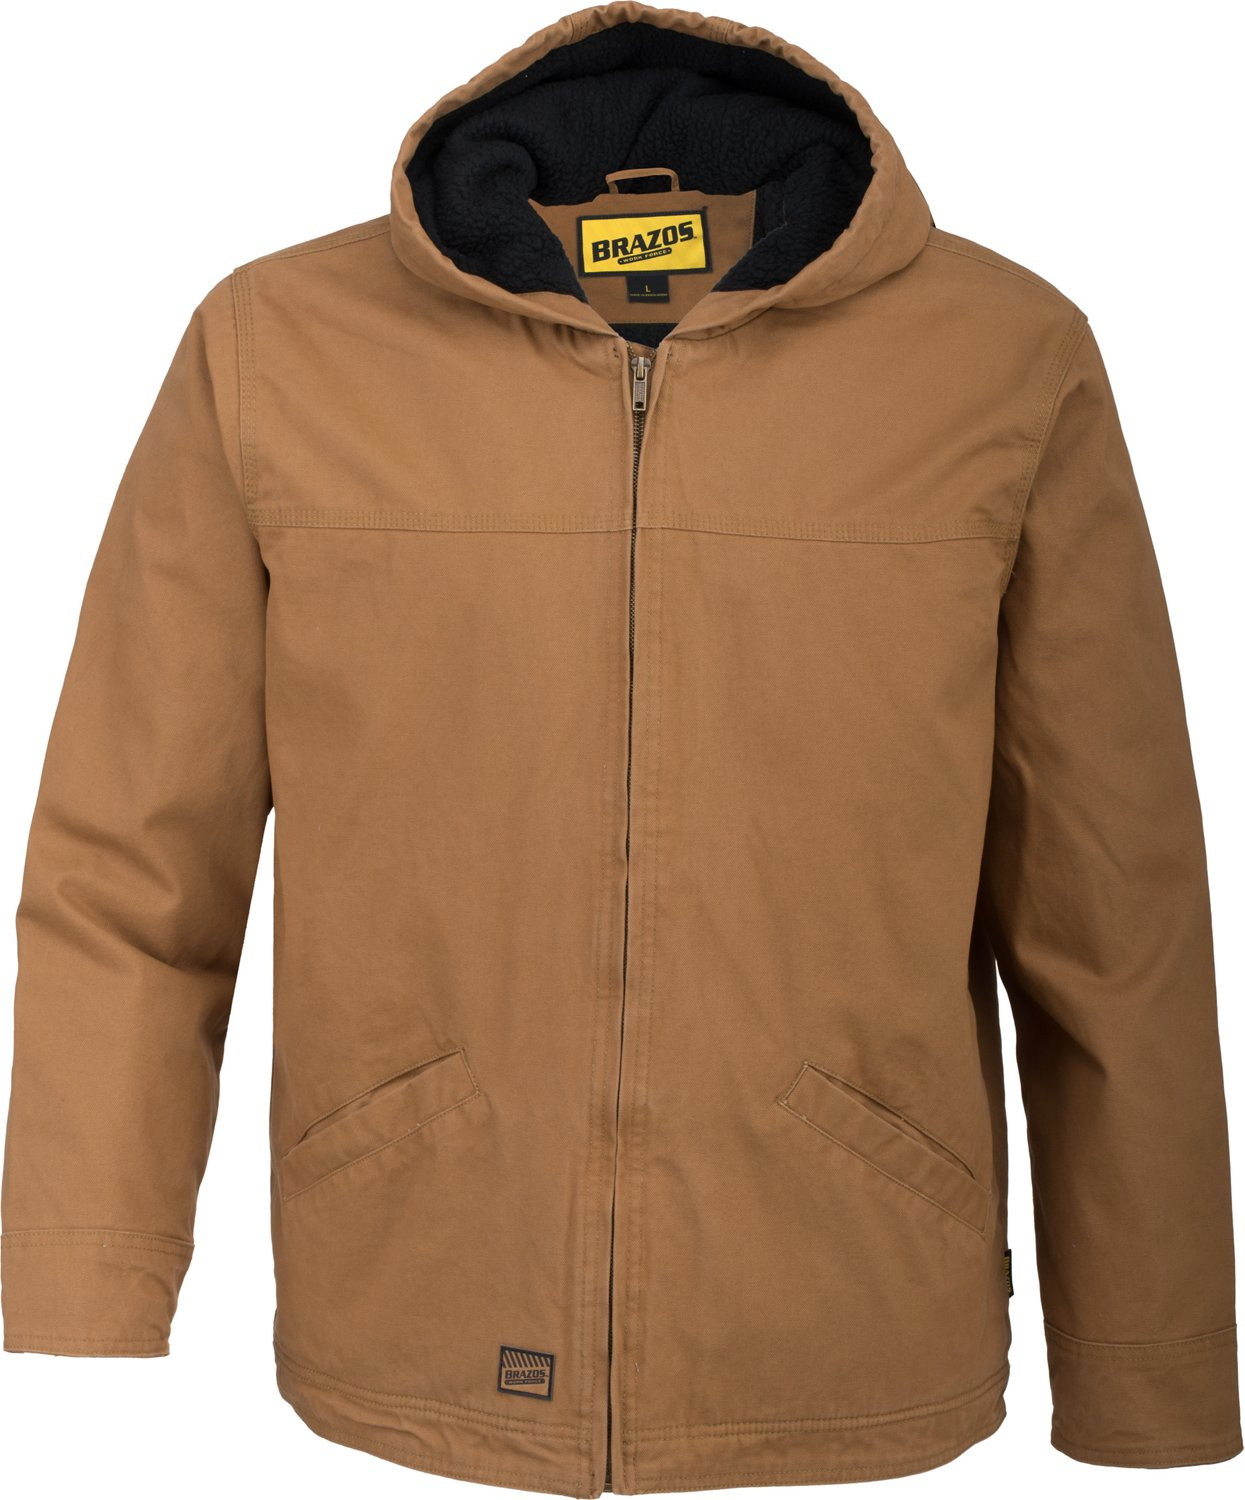 d98256233bb Display product reviews for Brazos Men's Gate Keeper Jacket